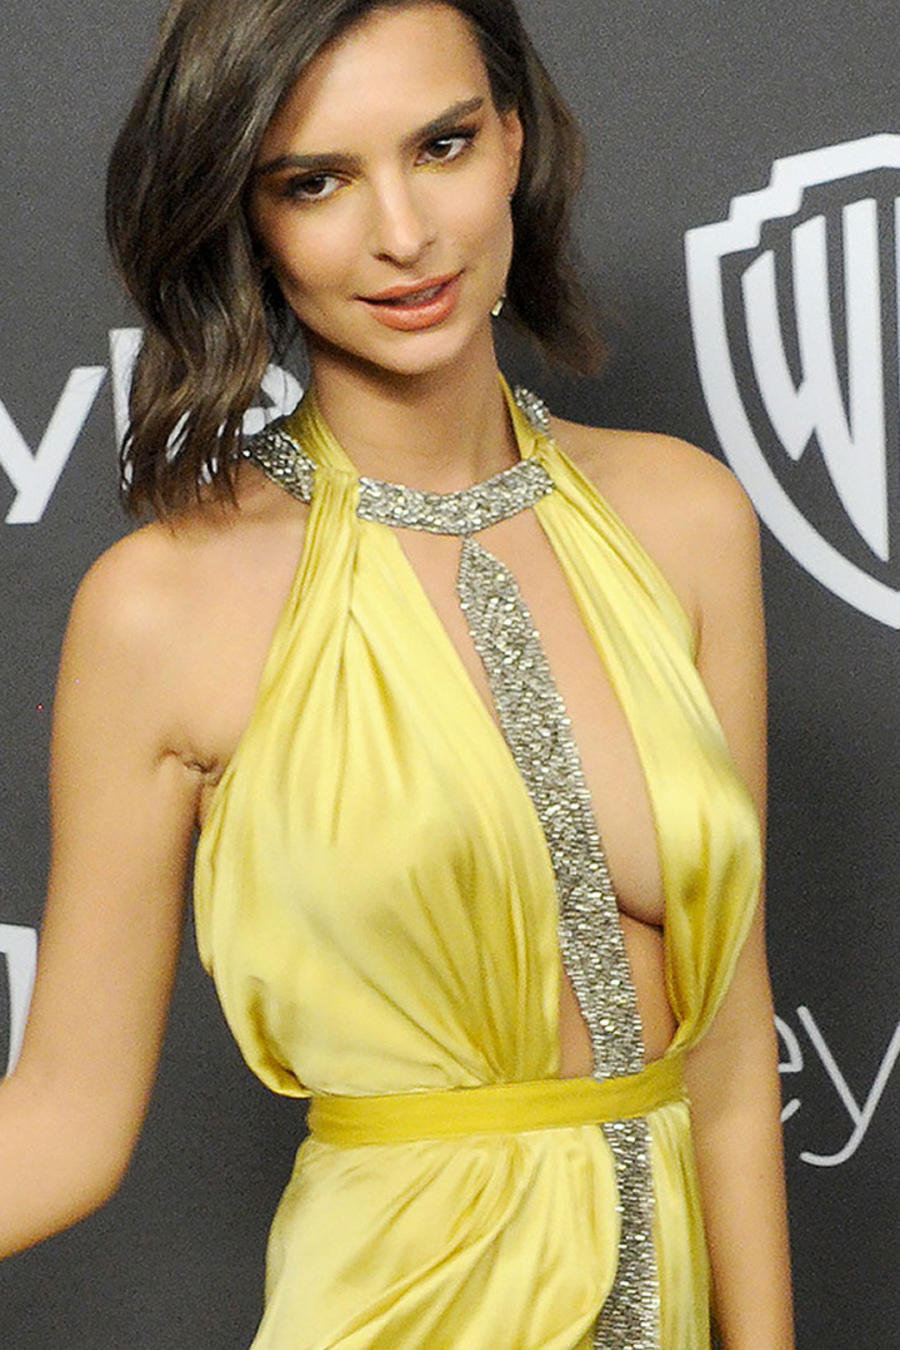 El blooper de Emily Ratajkowski en el afterparty de los Golden Globes 2017